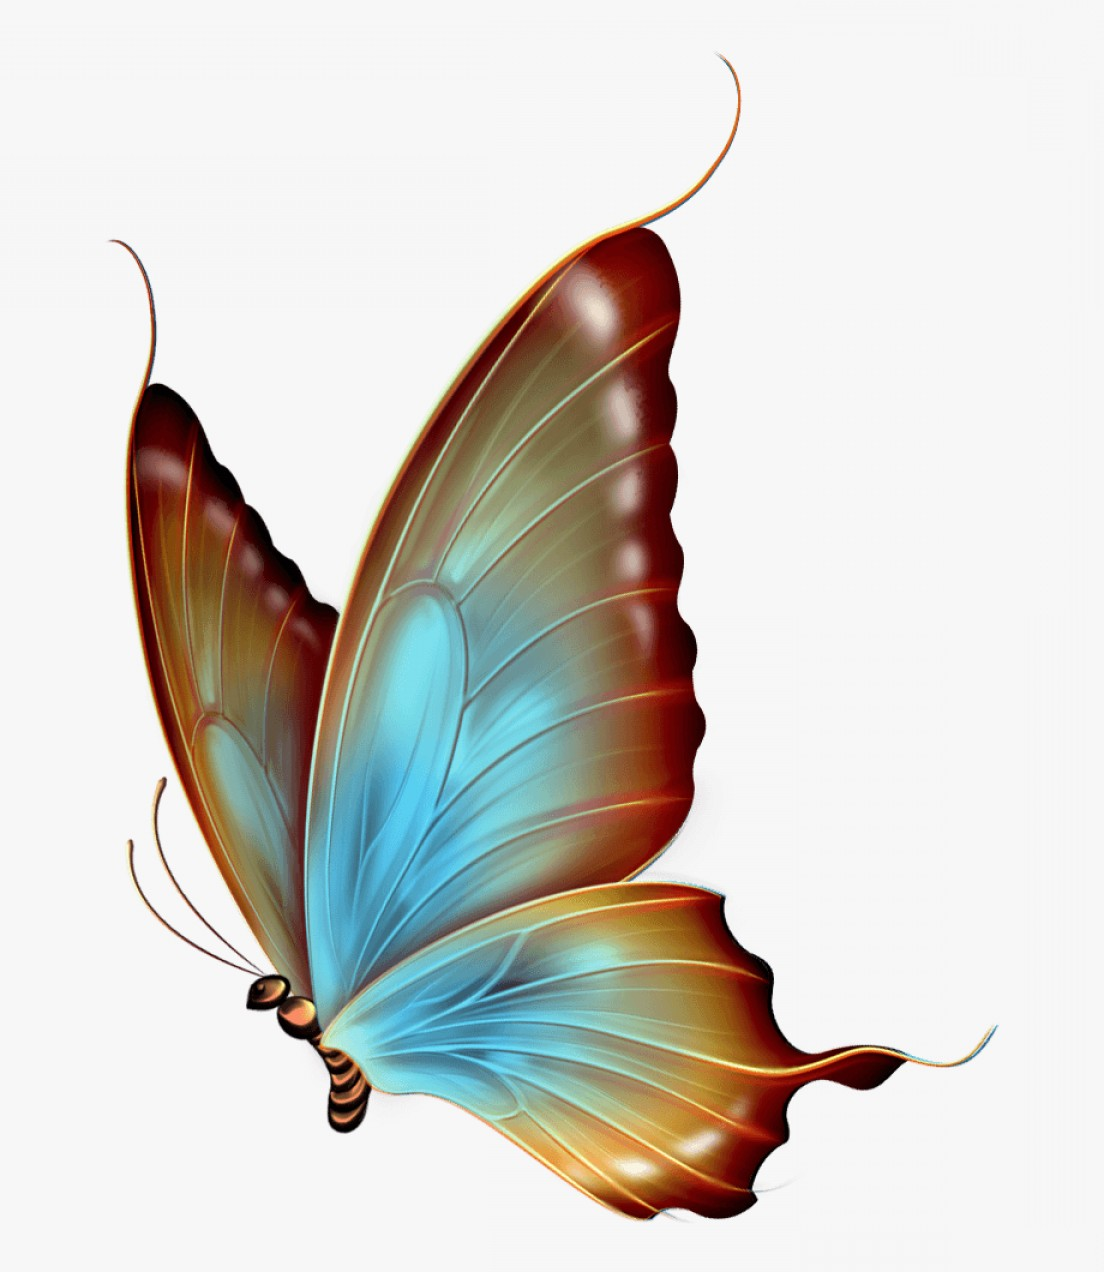 Real Butterfly Vector: Imorswimming Butterfly Clipart Transparent Transparent Background Butterfly Wing